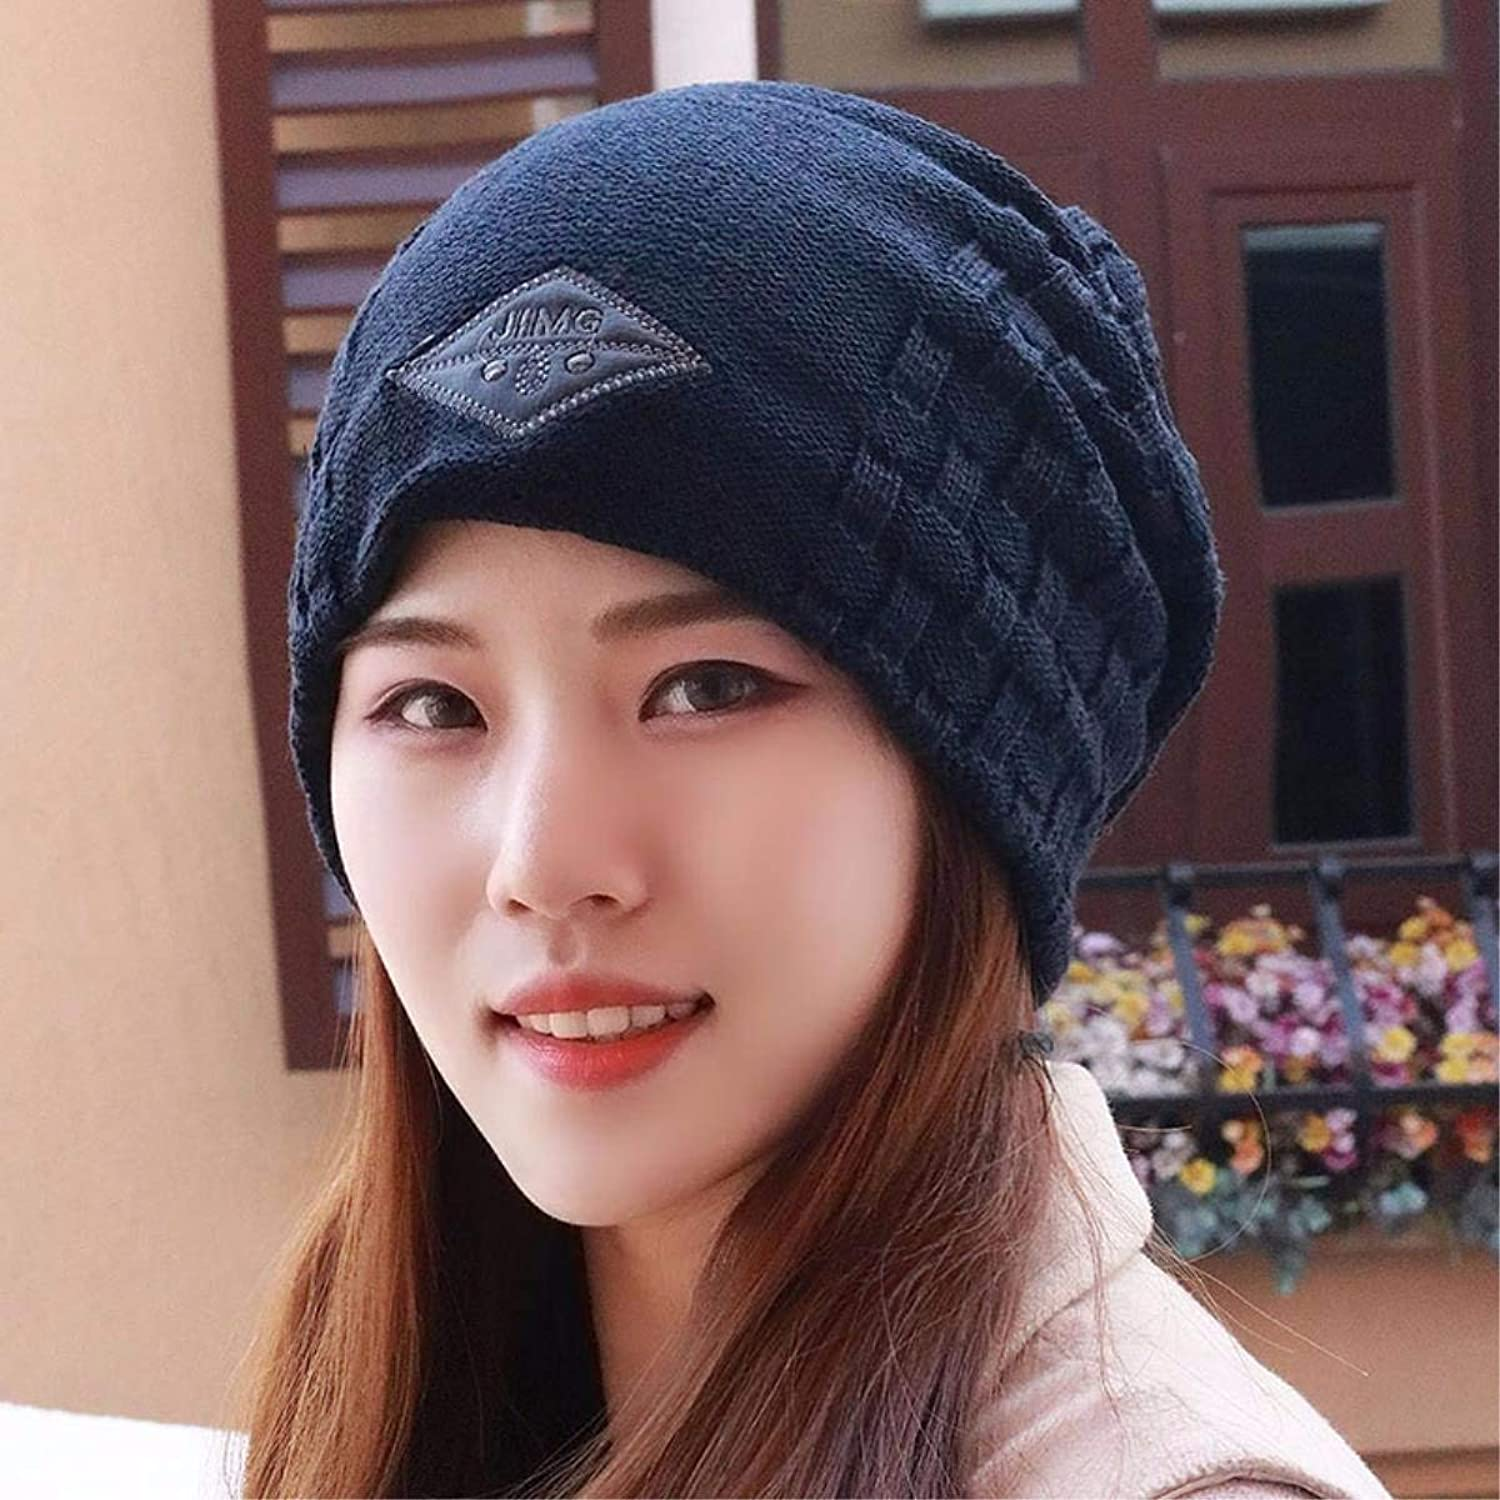 Chuiqingnet Winter knitting knitting hat elastic ear cap cap ear cap. A large number of youth Hats